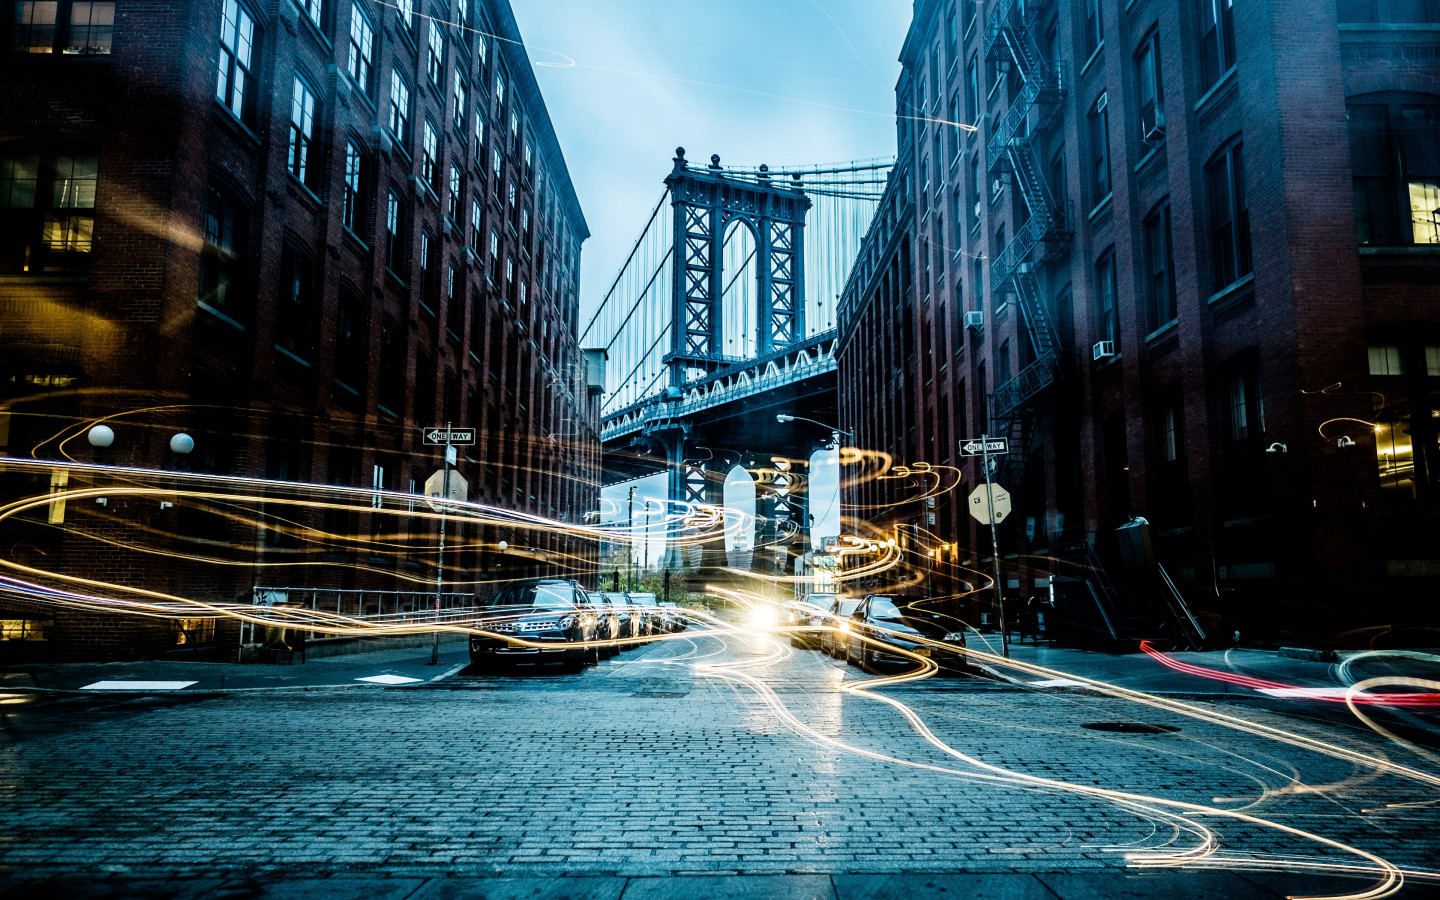 Light painting on New York streets | 1440x900 wallpaper